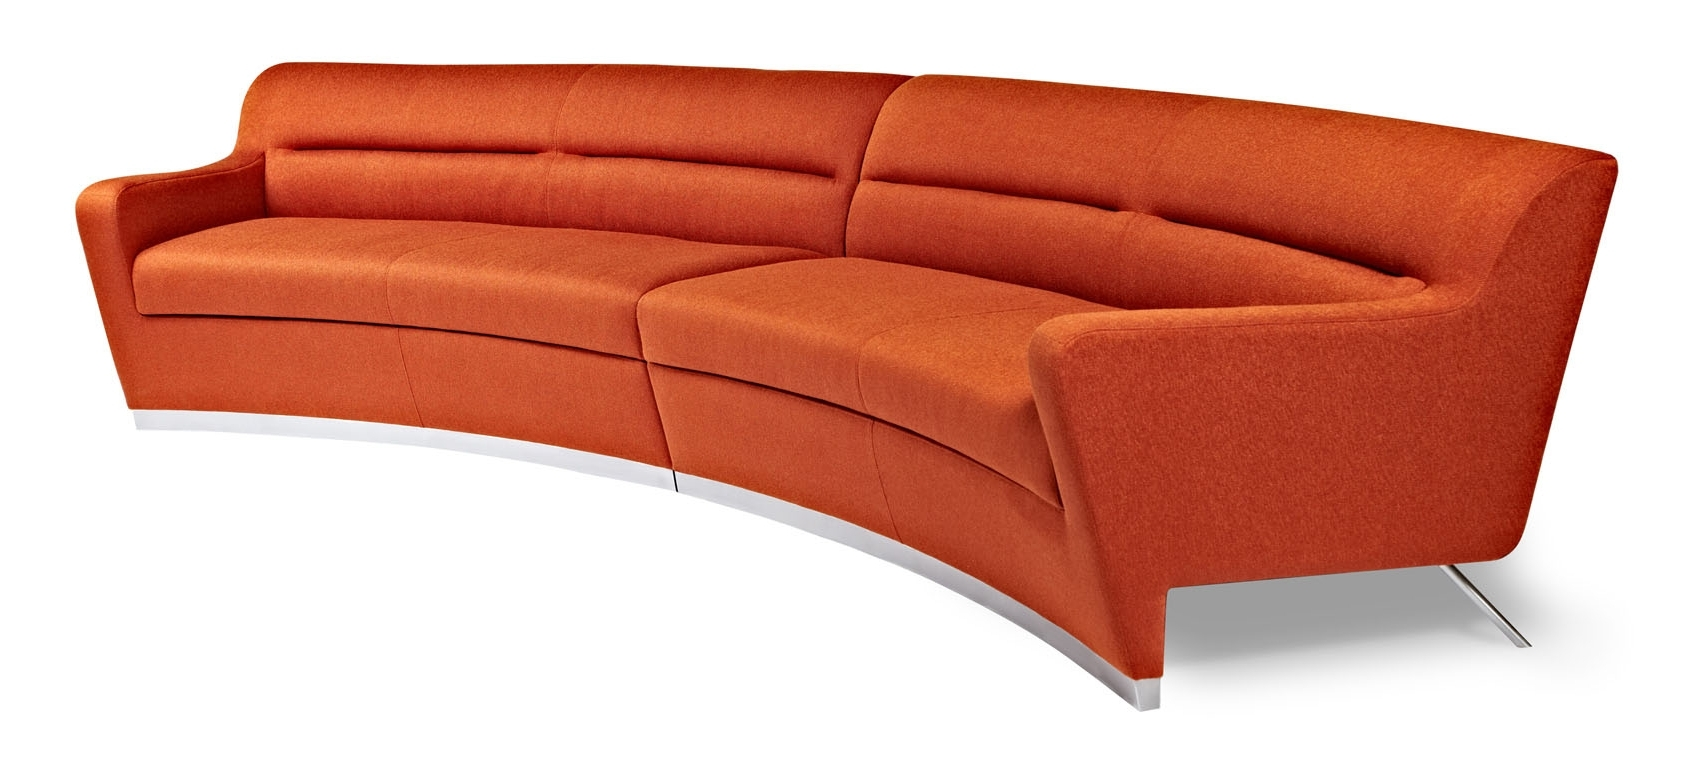 Well Known Niagara Sectional Sofas With American Leather Niagara Sectional Sofa (View 14 of 15)